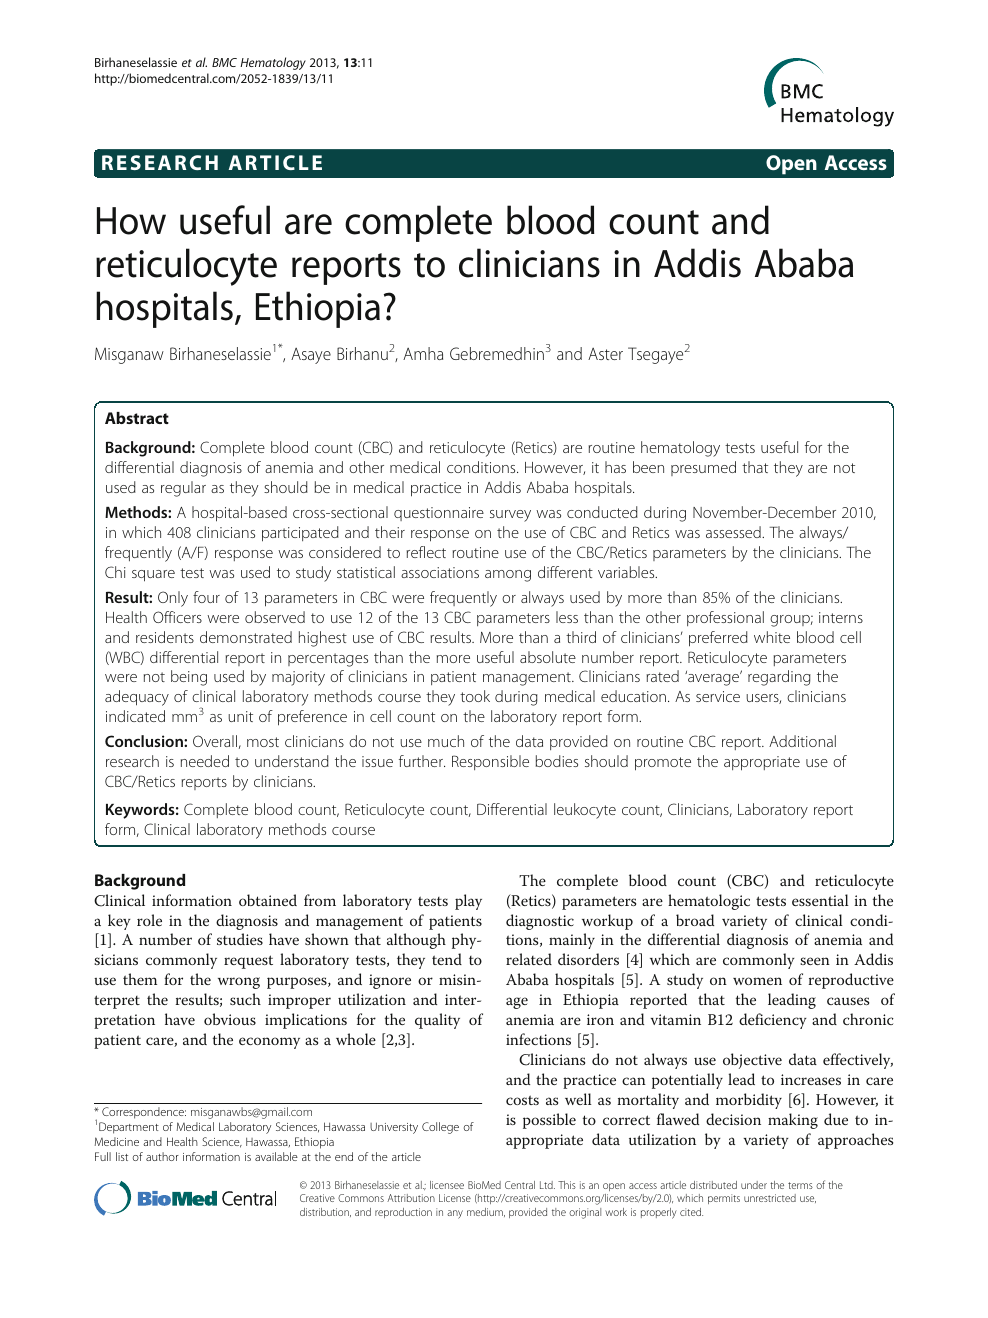 How useful are complete blood count and reticulocyte reports to